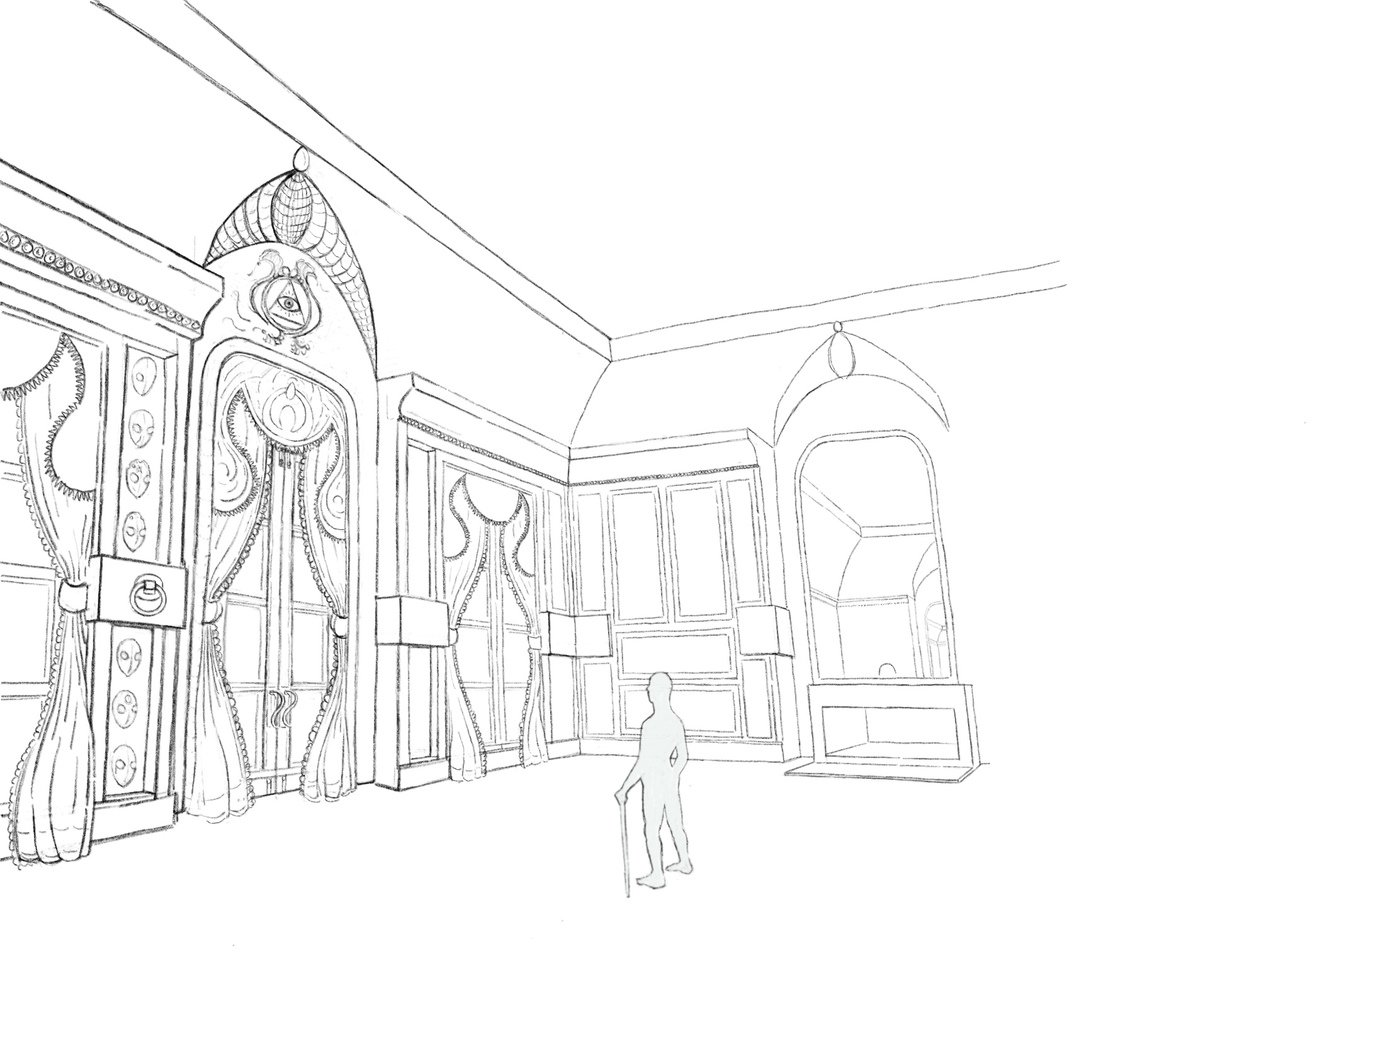 Villain S Club Concept Art Perspective By Andrew Soper At